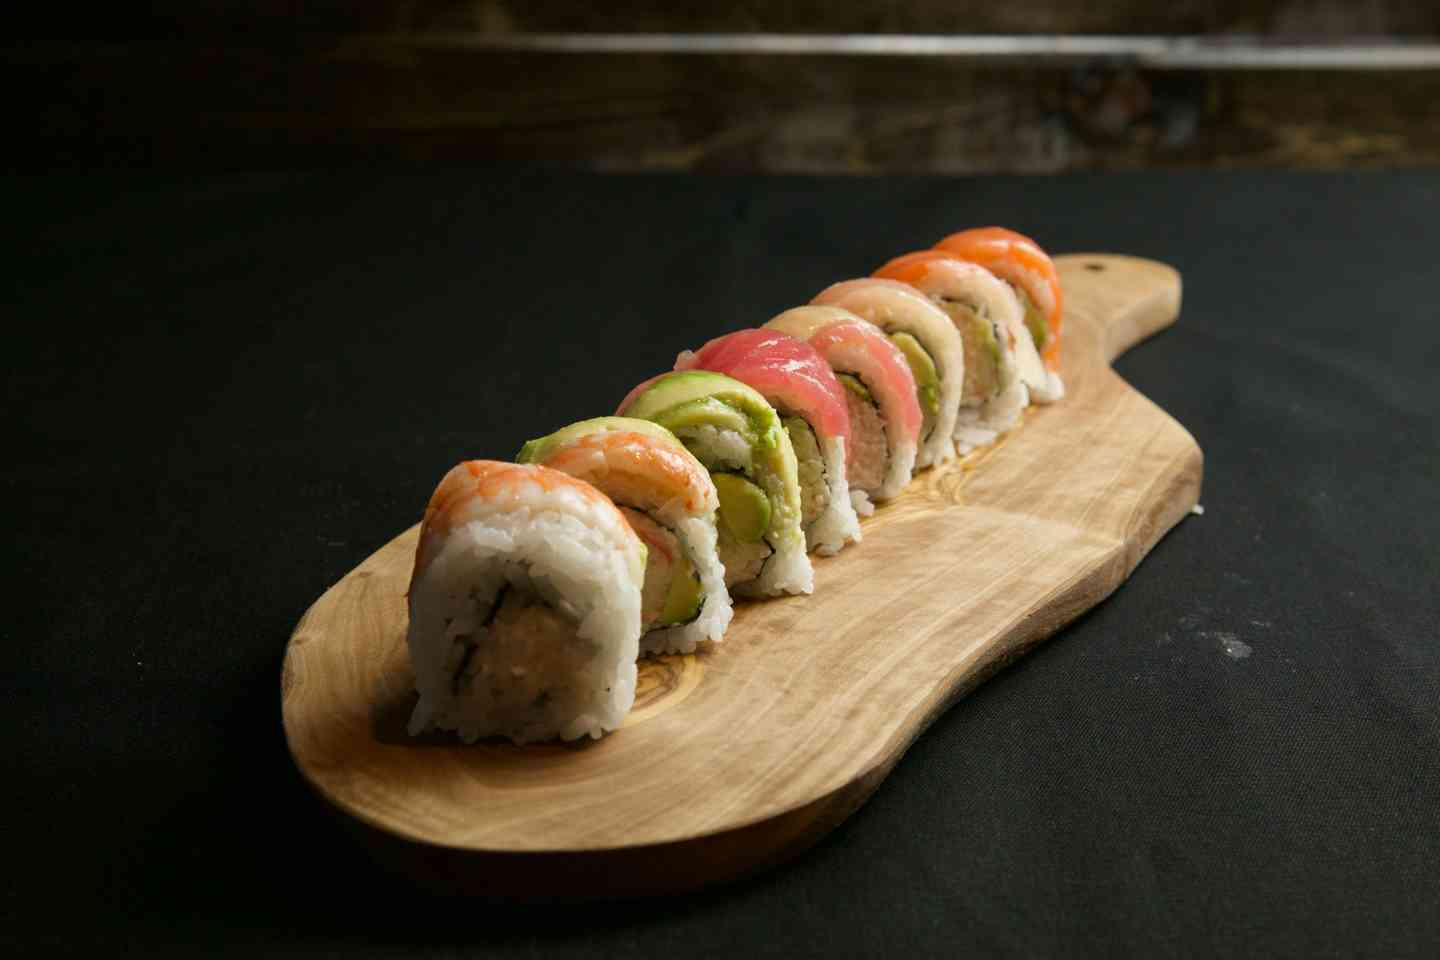 Rainbow on Cali Roll